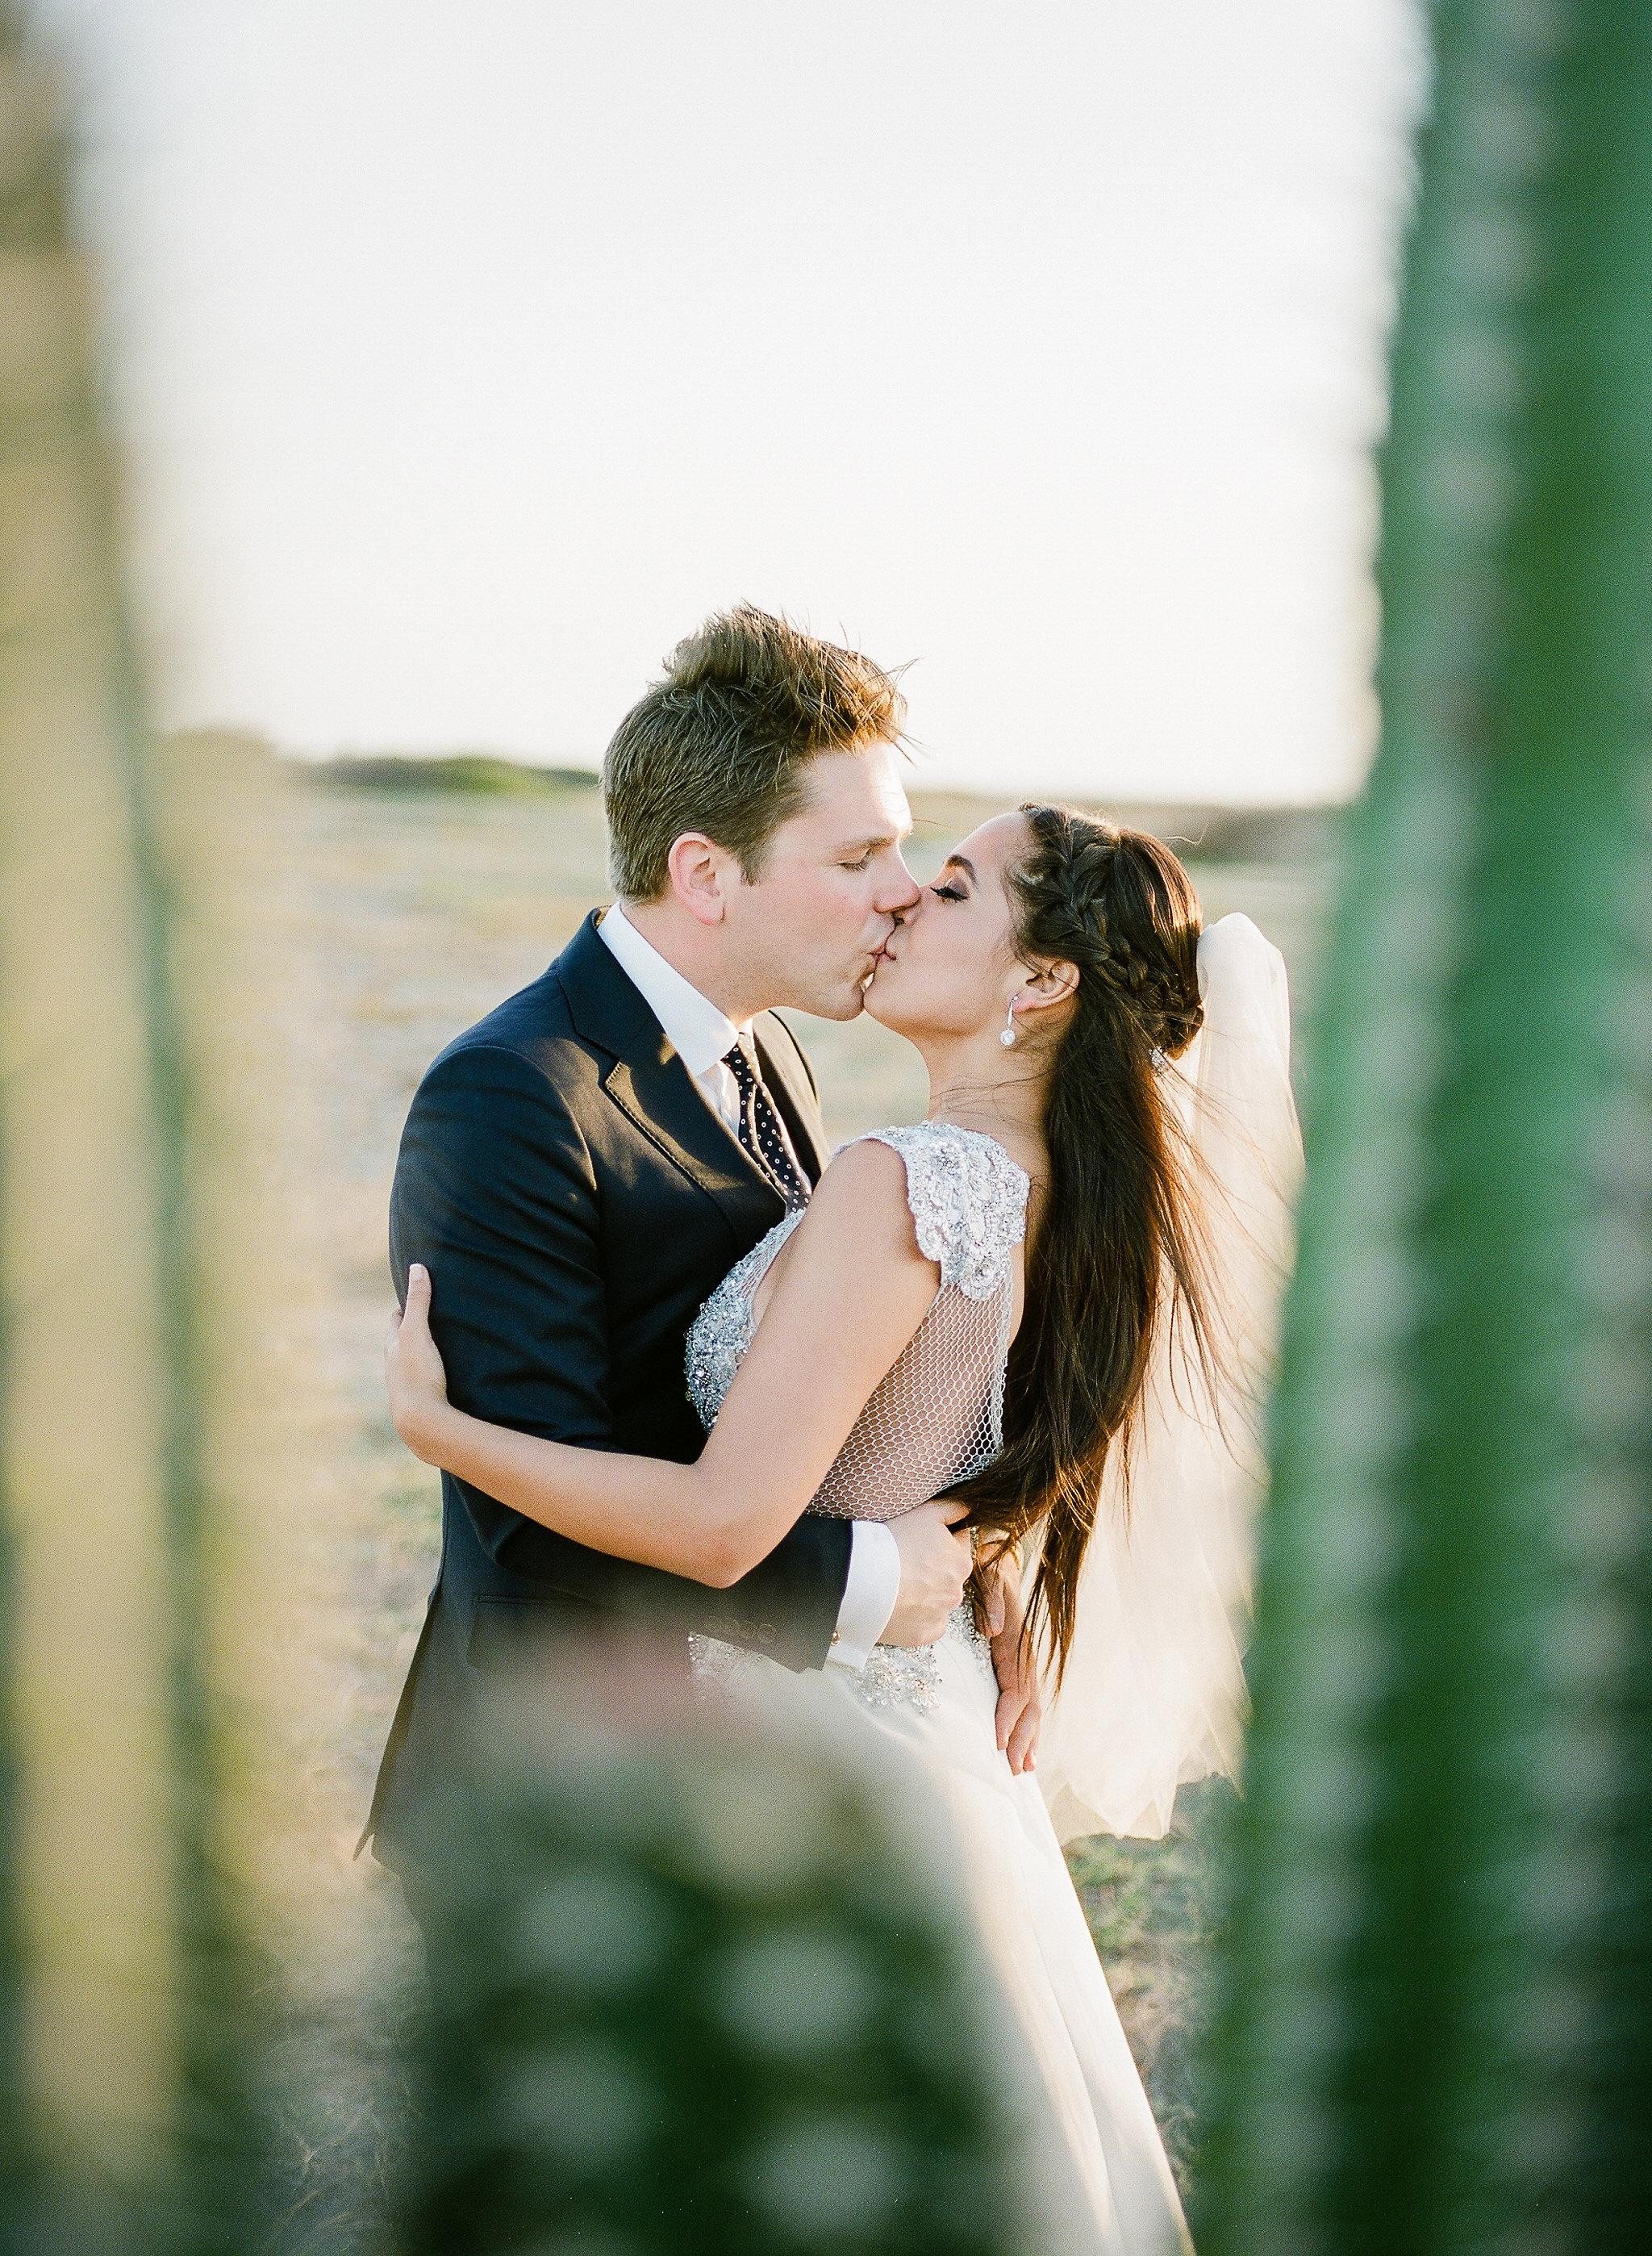 destination weddings, beach weddings, aruba weddings